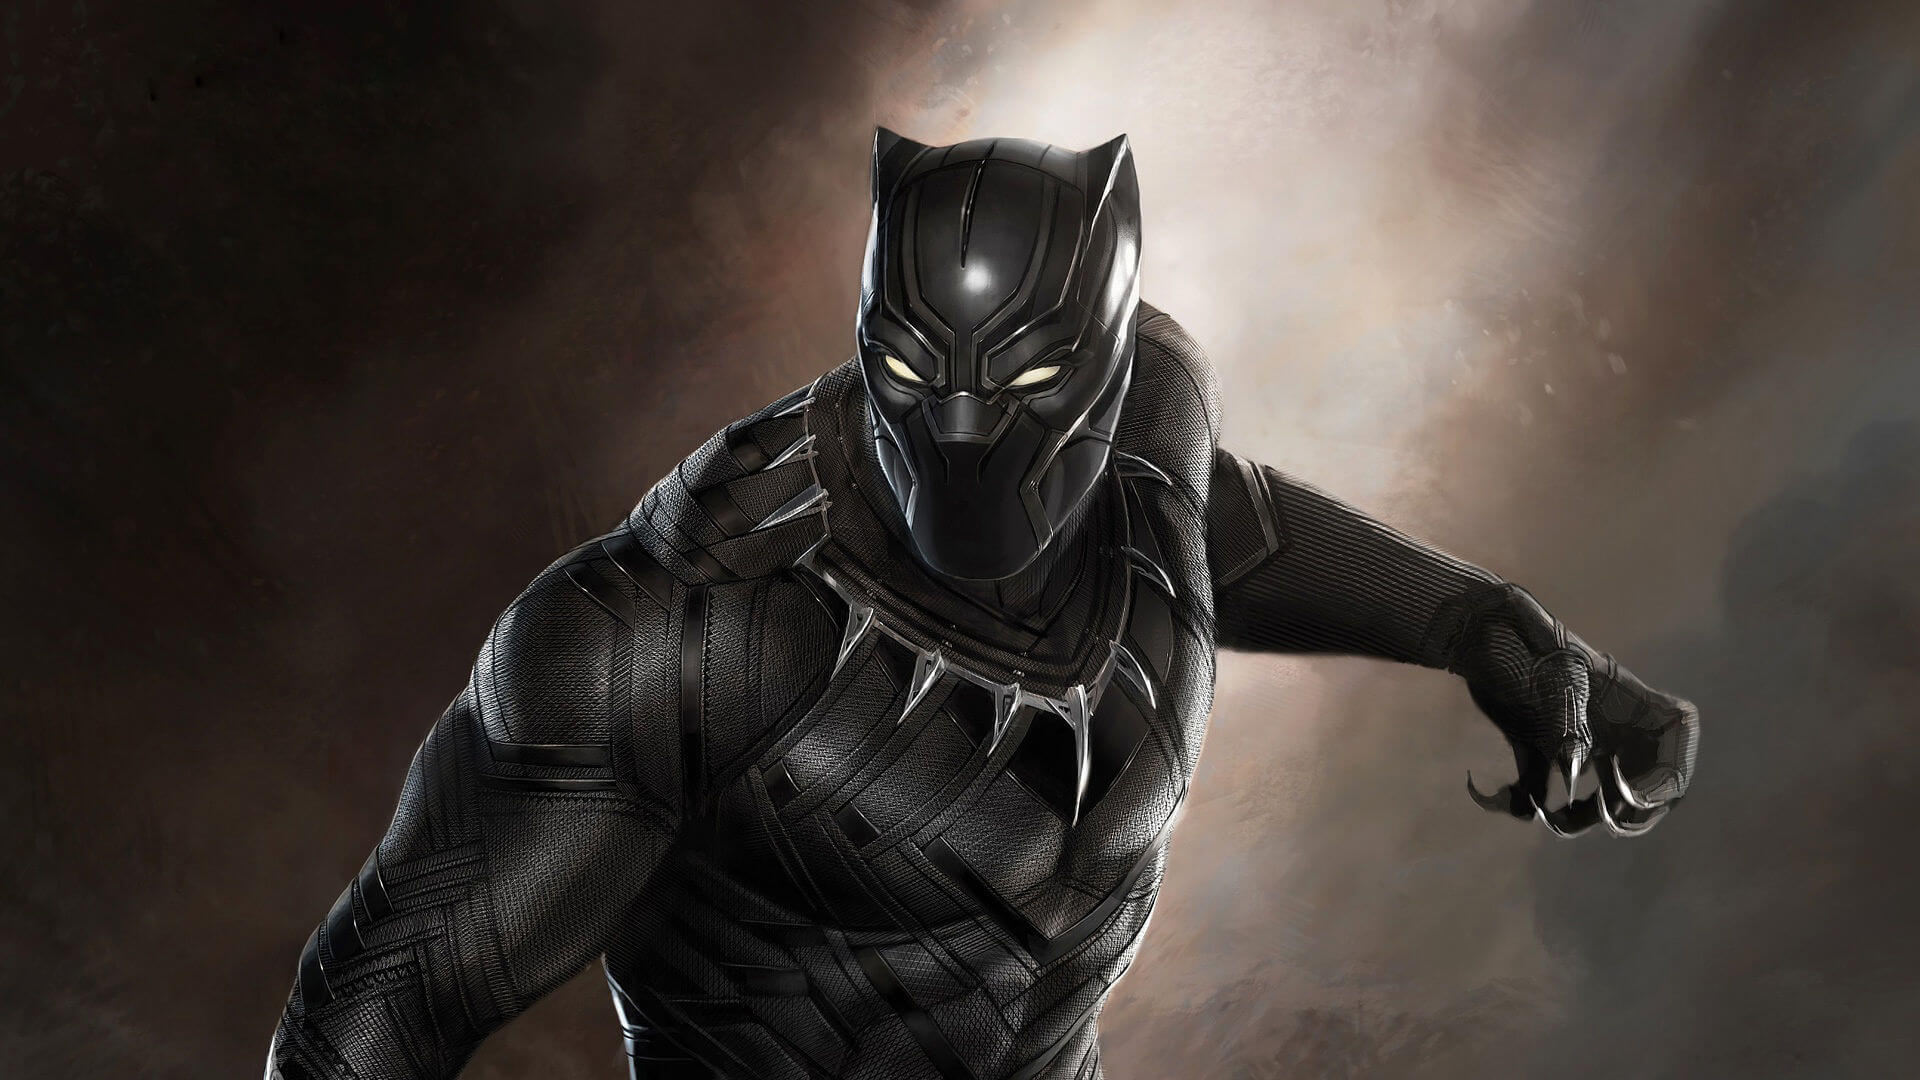 Black Panther Will Lead Into Avengers: Infinity War